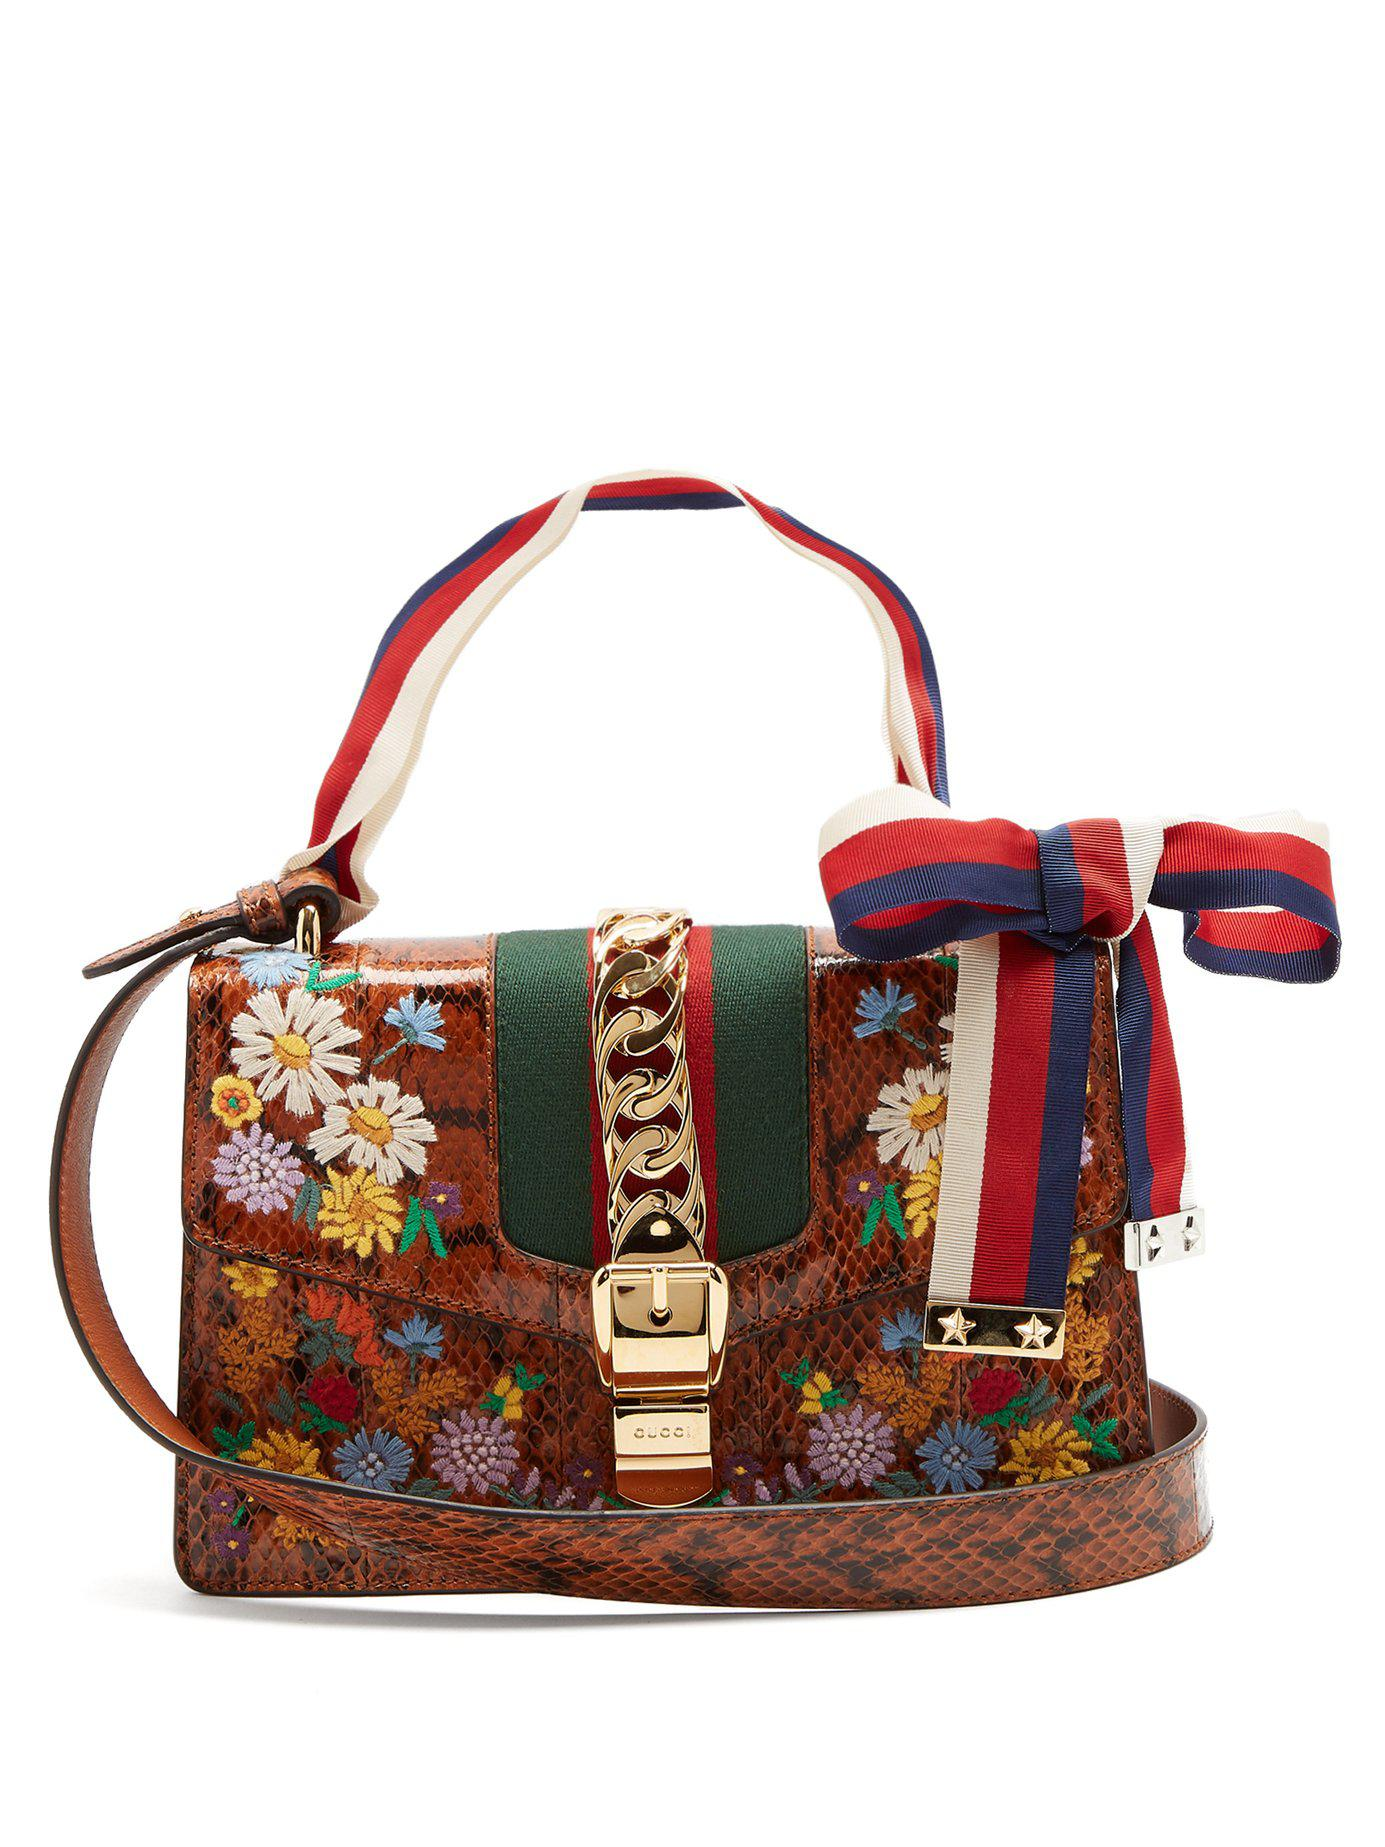 71c6b999c70 Lyst - Gucci Floral Embroidered Watersnake Shoulder Bag in Brown